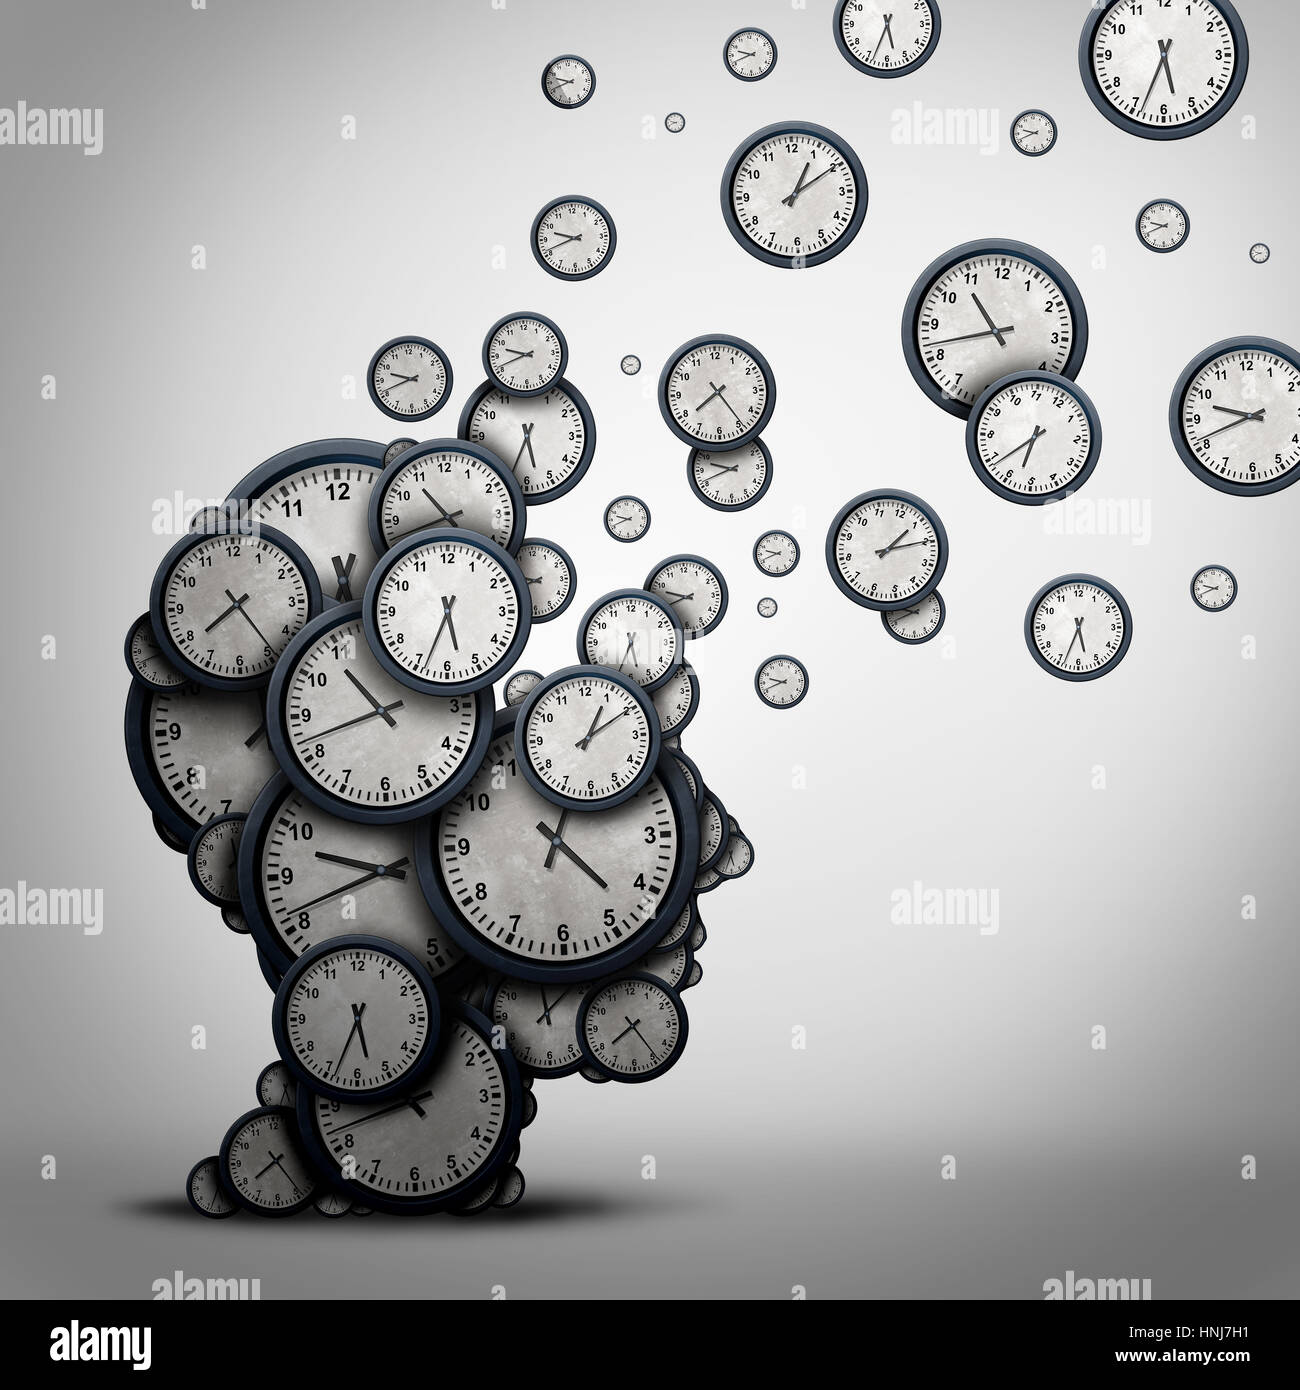 Planning time business concept or wasting minutes as a group of timepieces or clocks shaped as a human head. - Stock Image